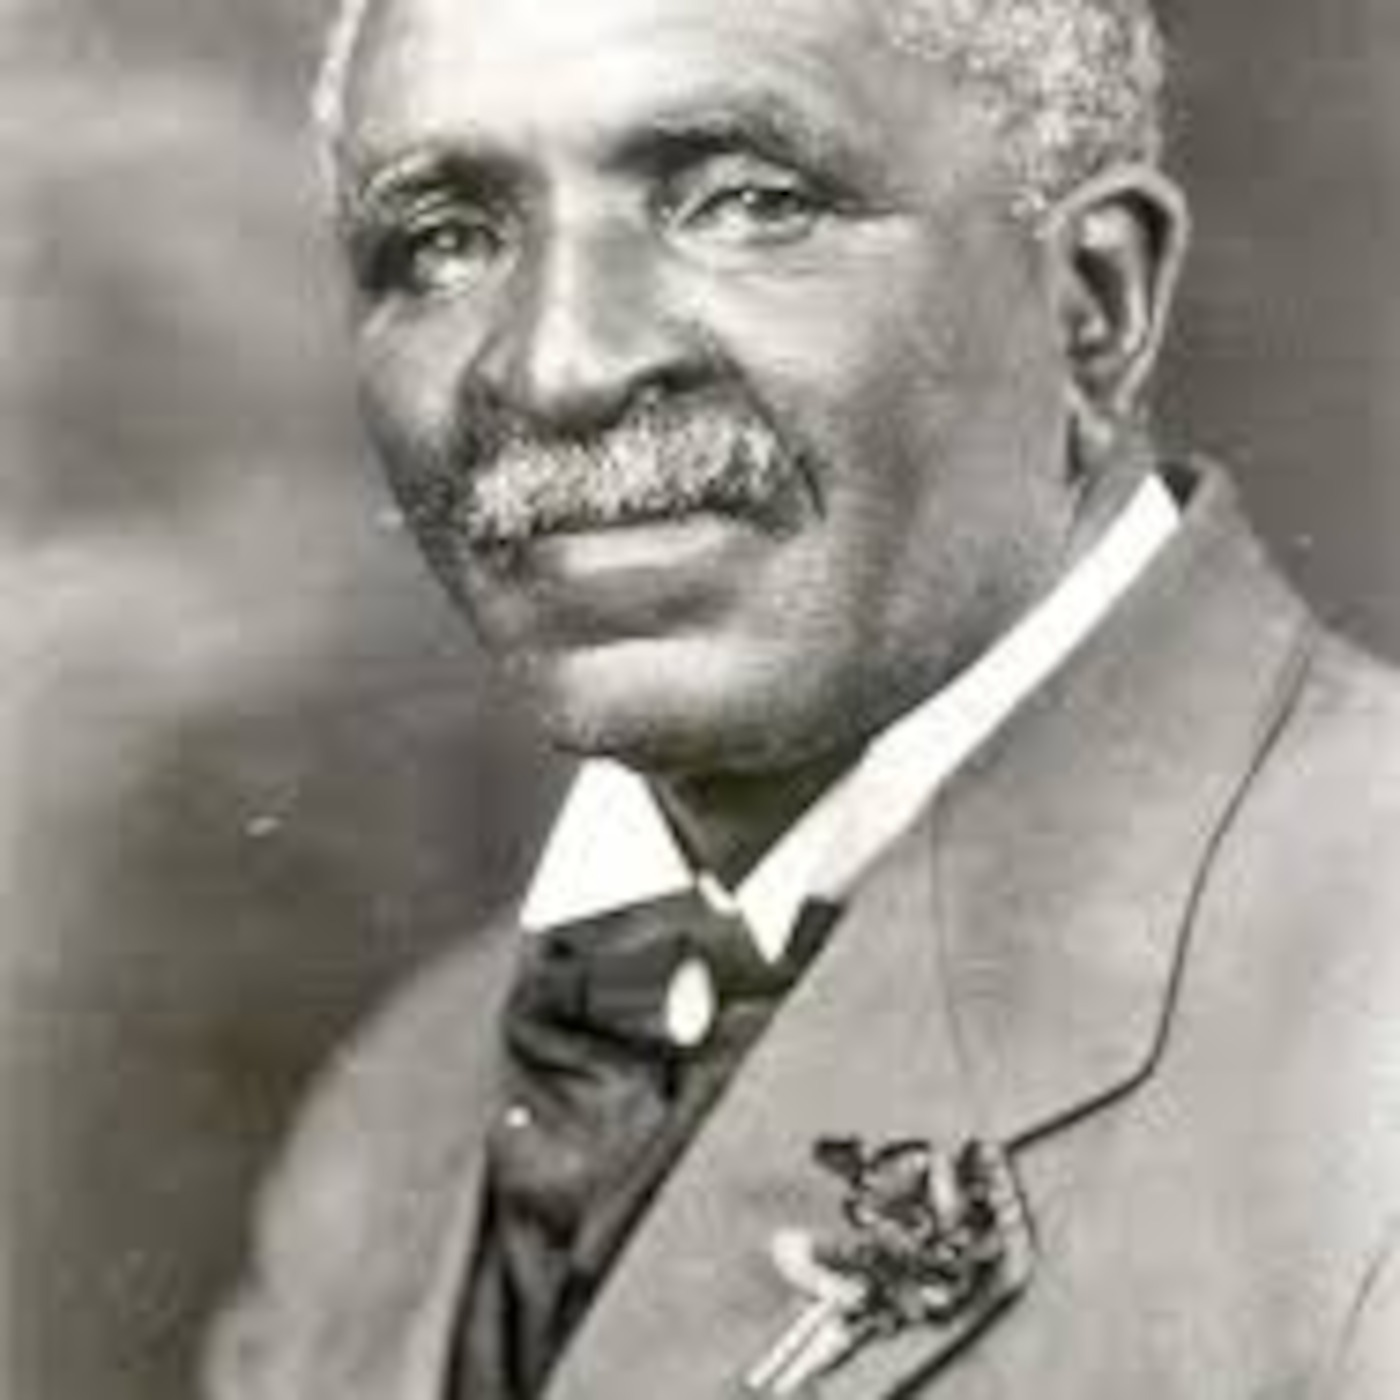 account of the life of george washington carver an american botanist and inventor George washington carver was a prominent american scientist and inventor in the early 1900s carver developed hundreds of products using the.